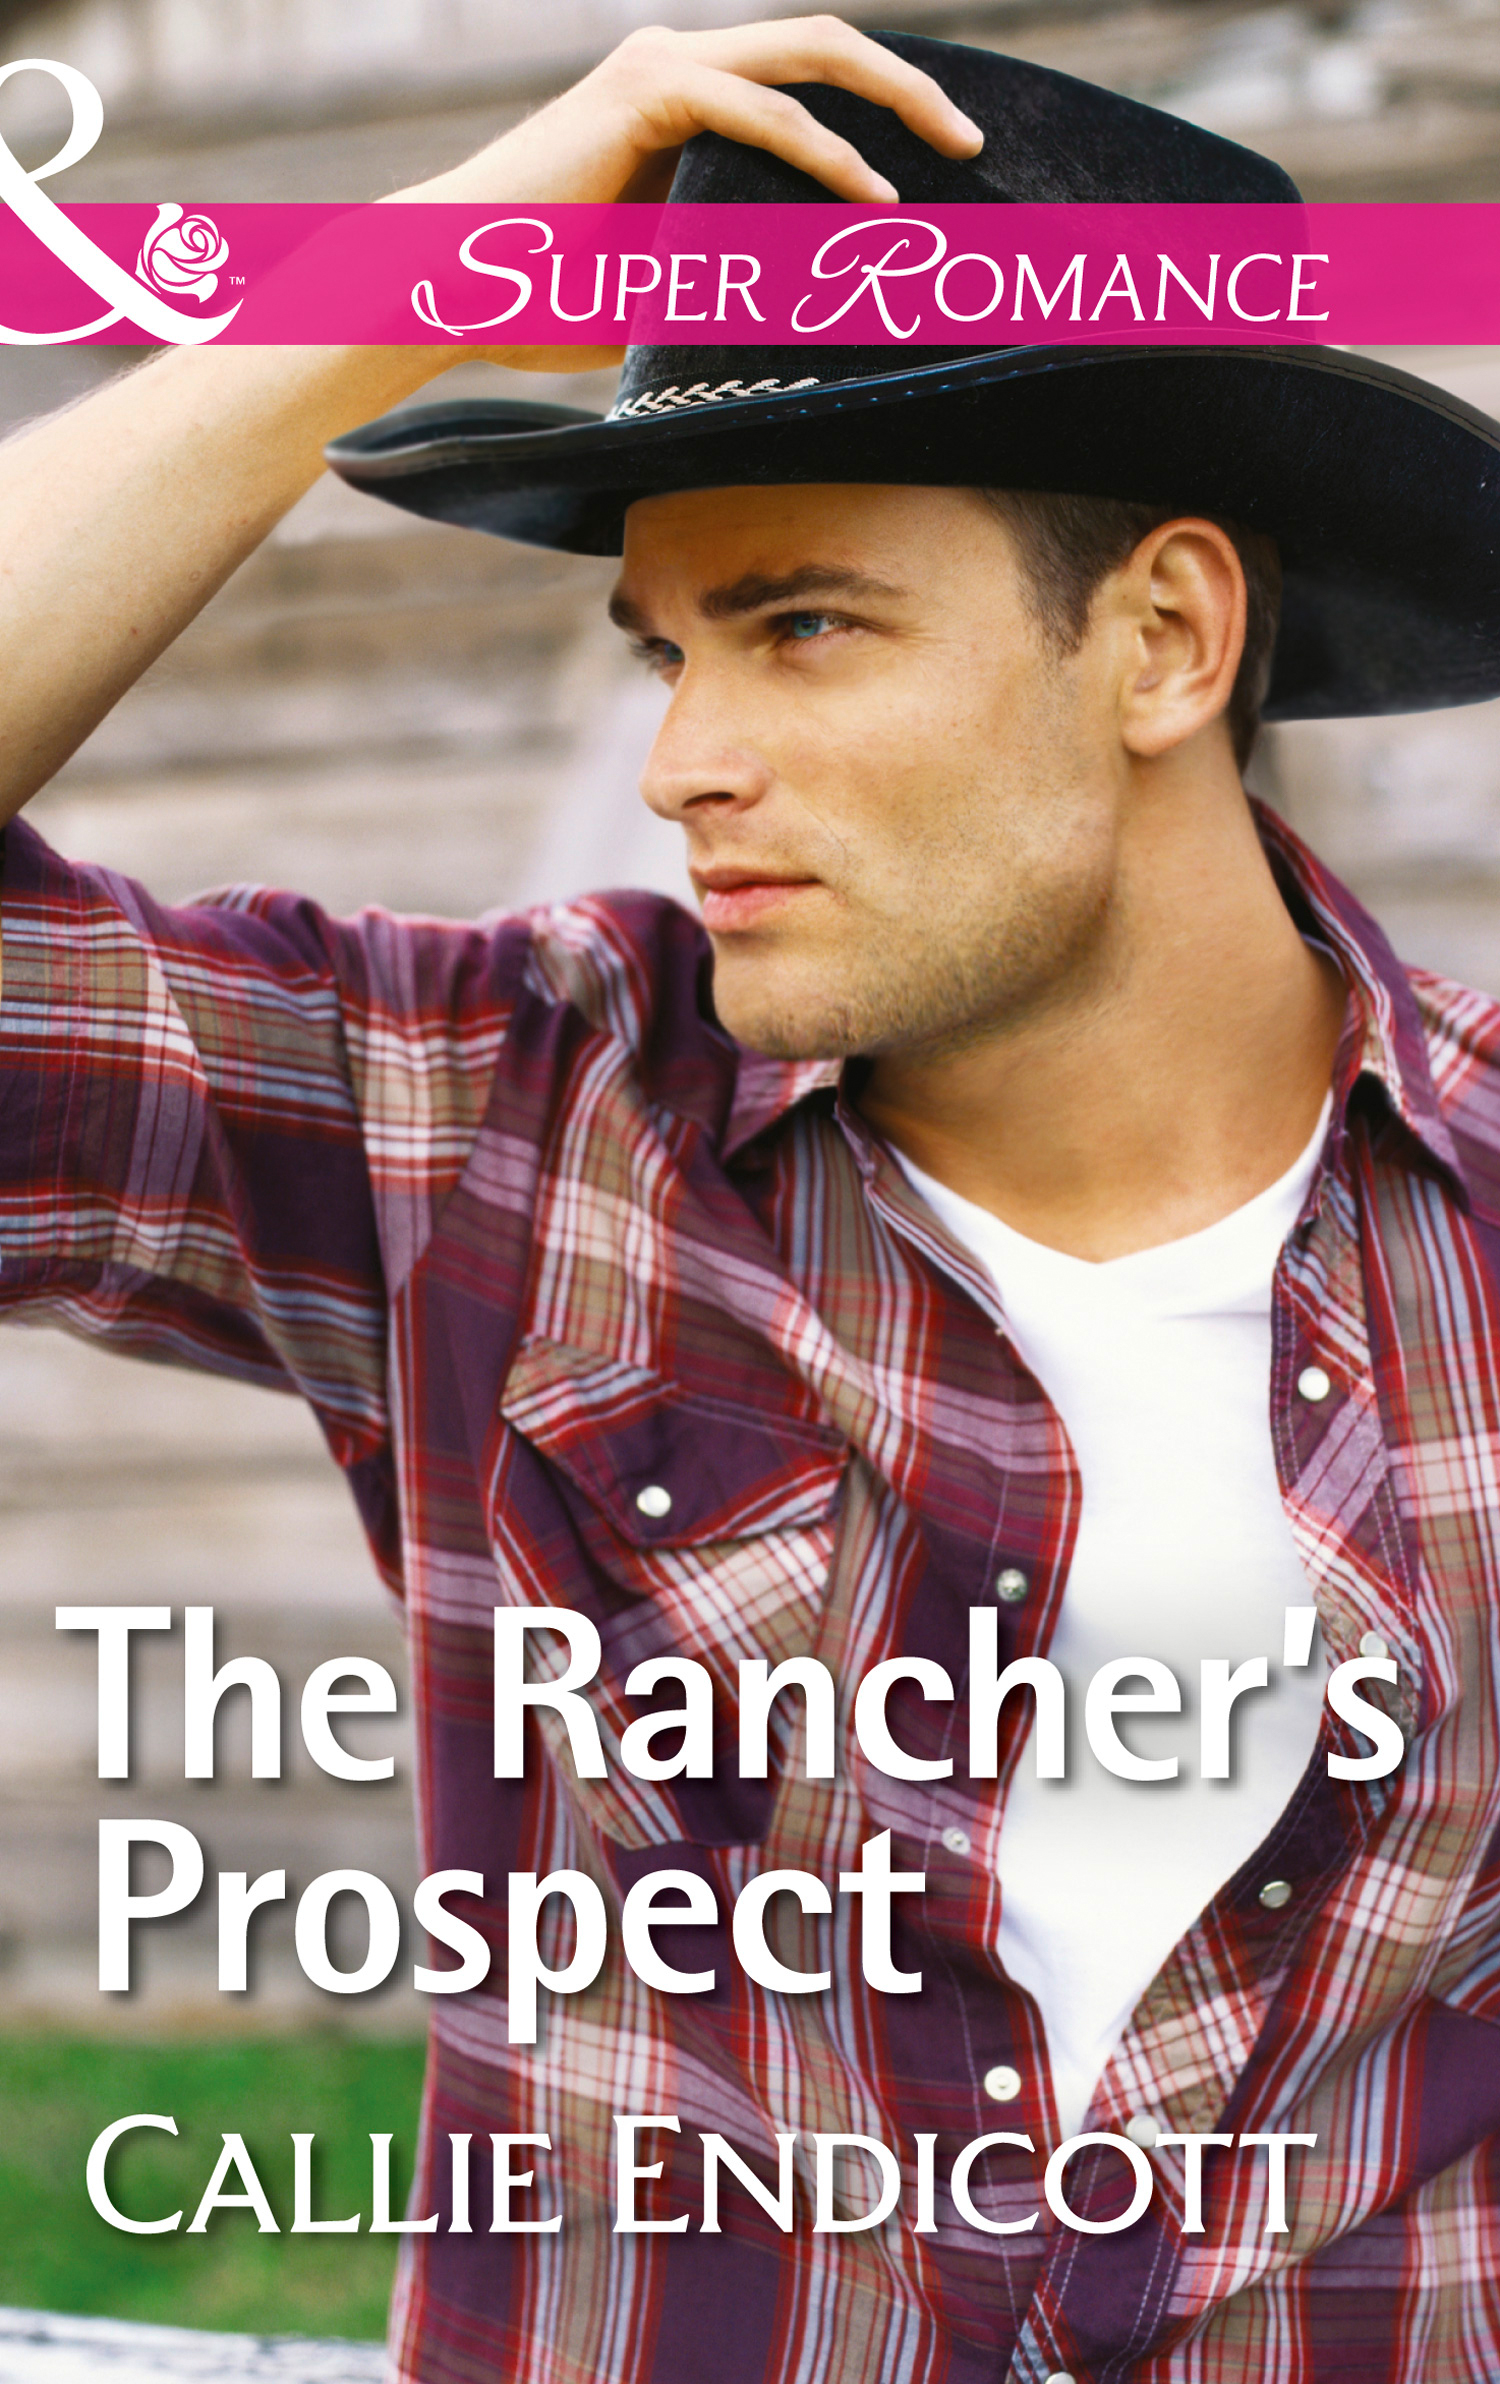 The Rancher's Prospect